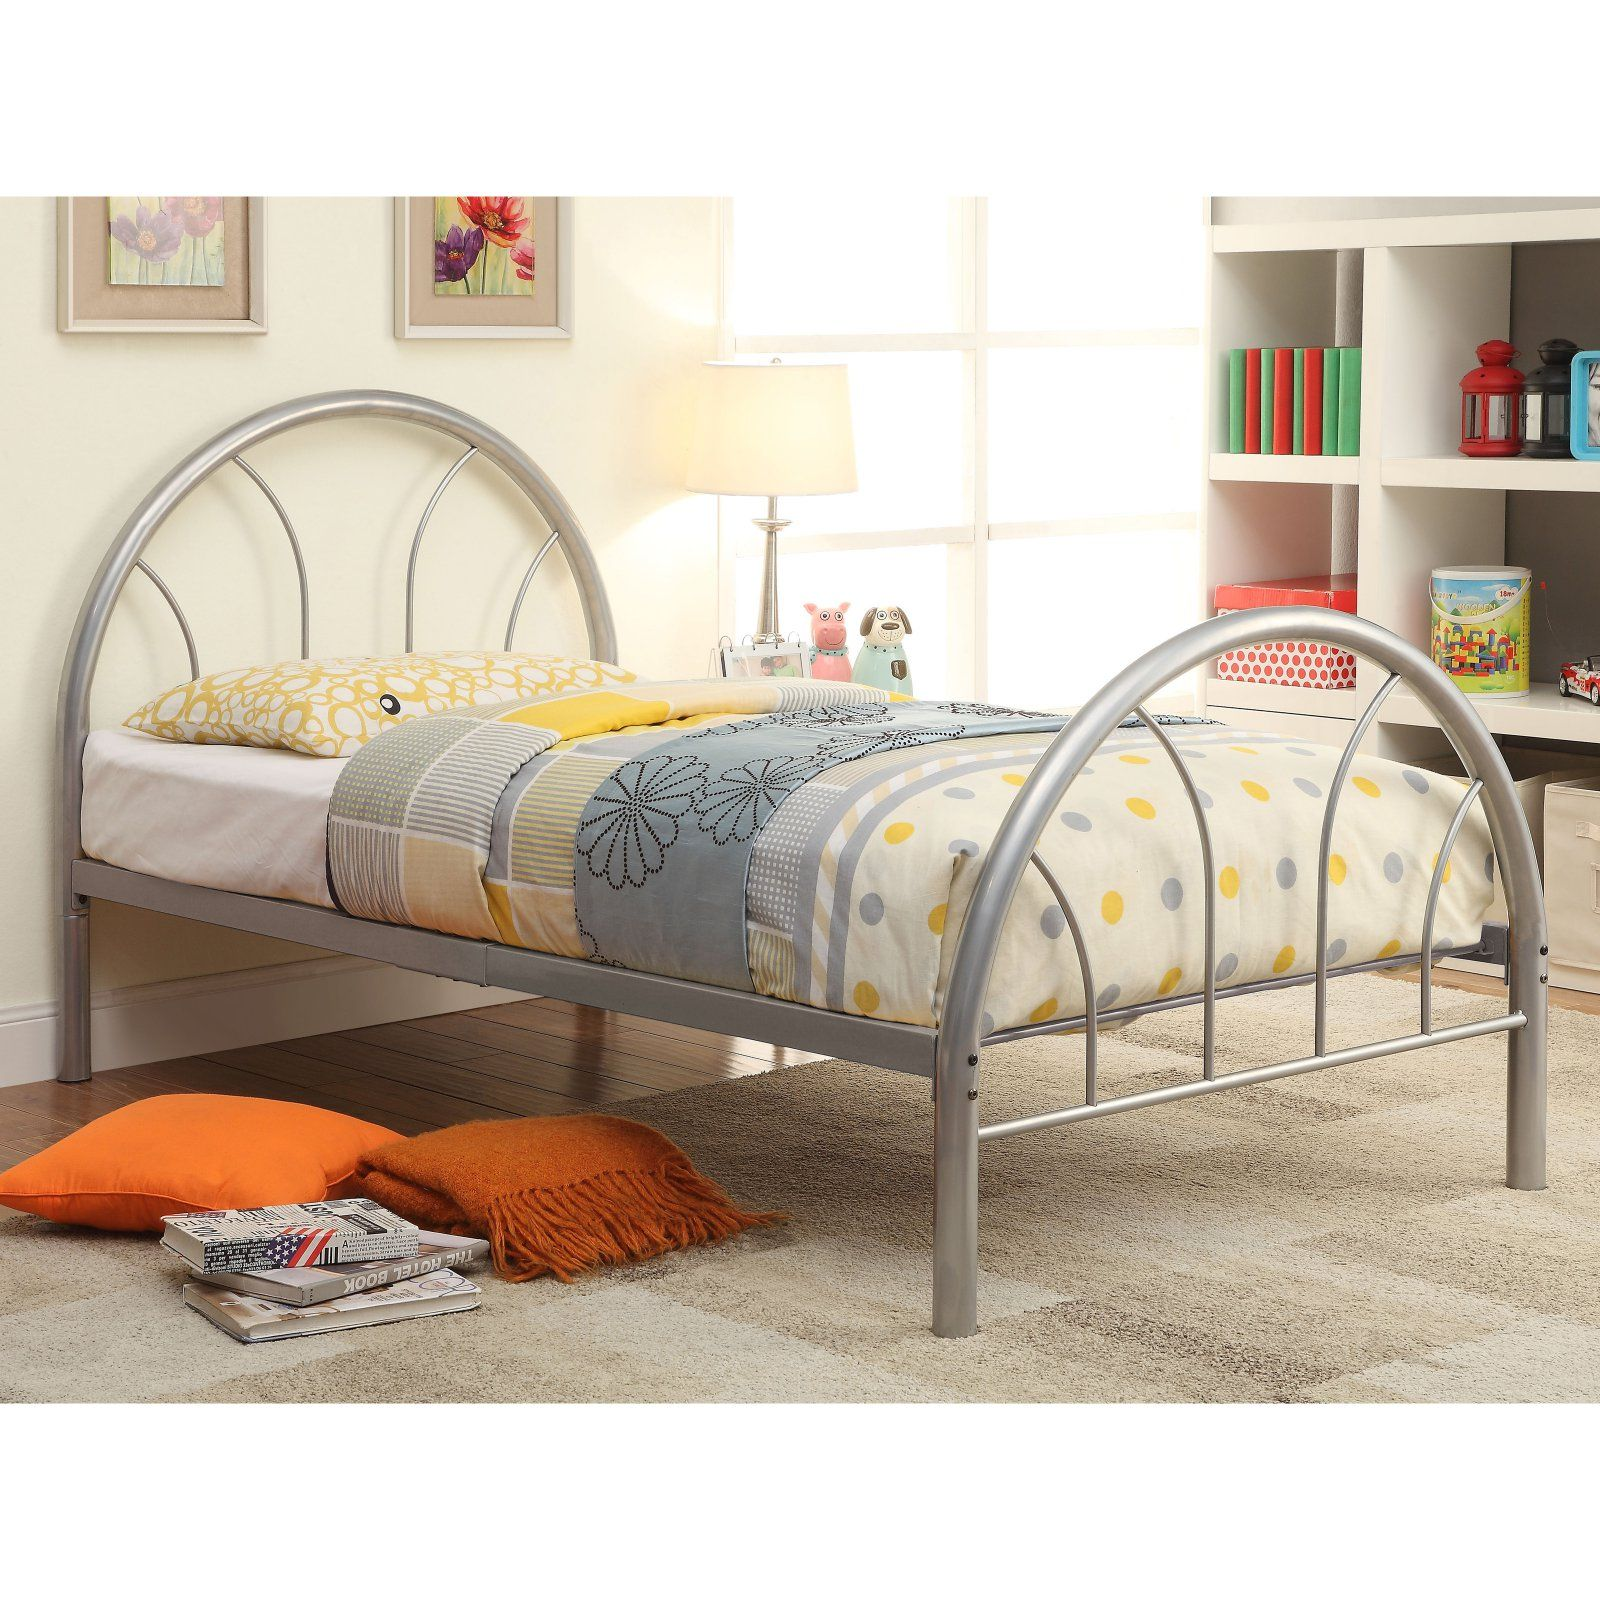 Furniture Of America Benjamin Metal Youth Bed Size Full Double